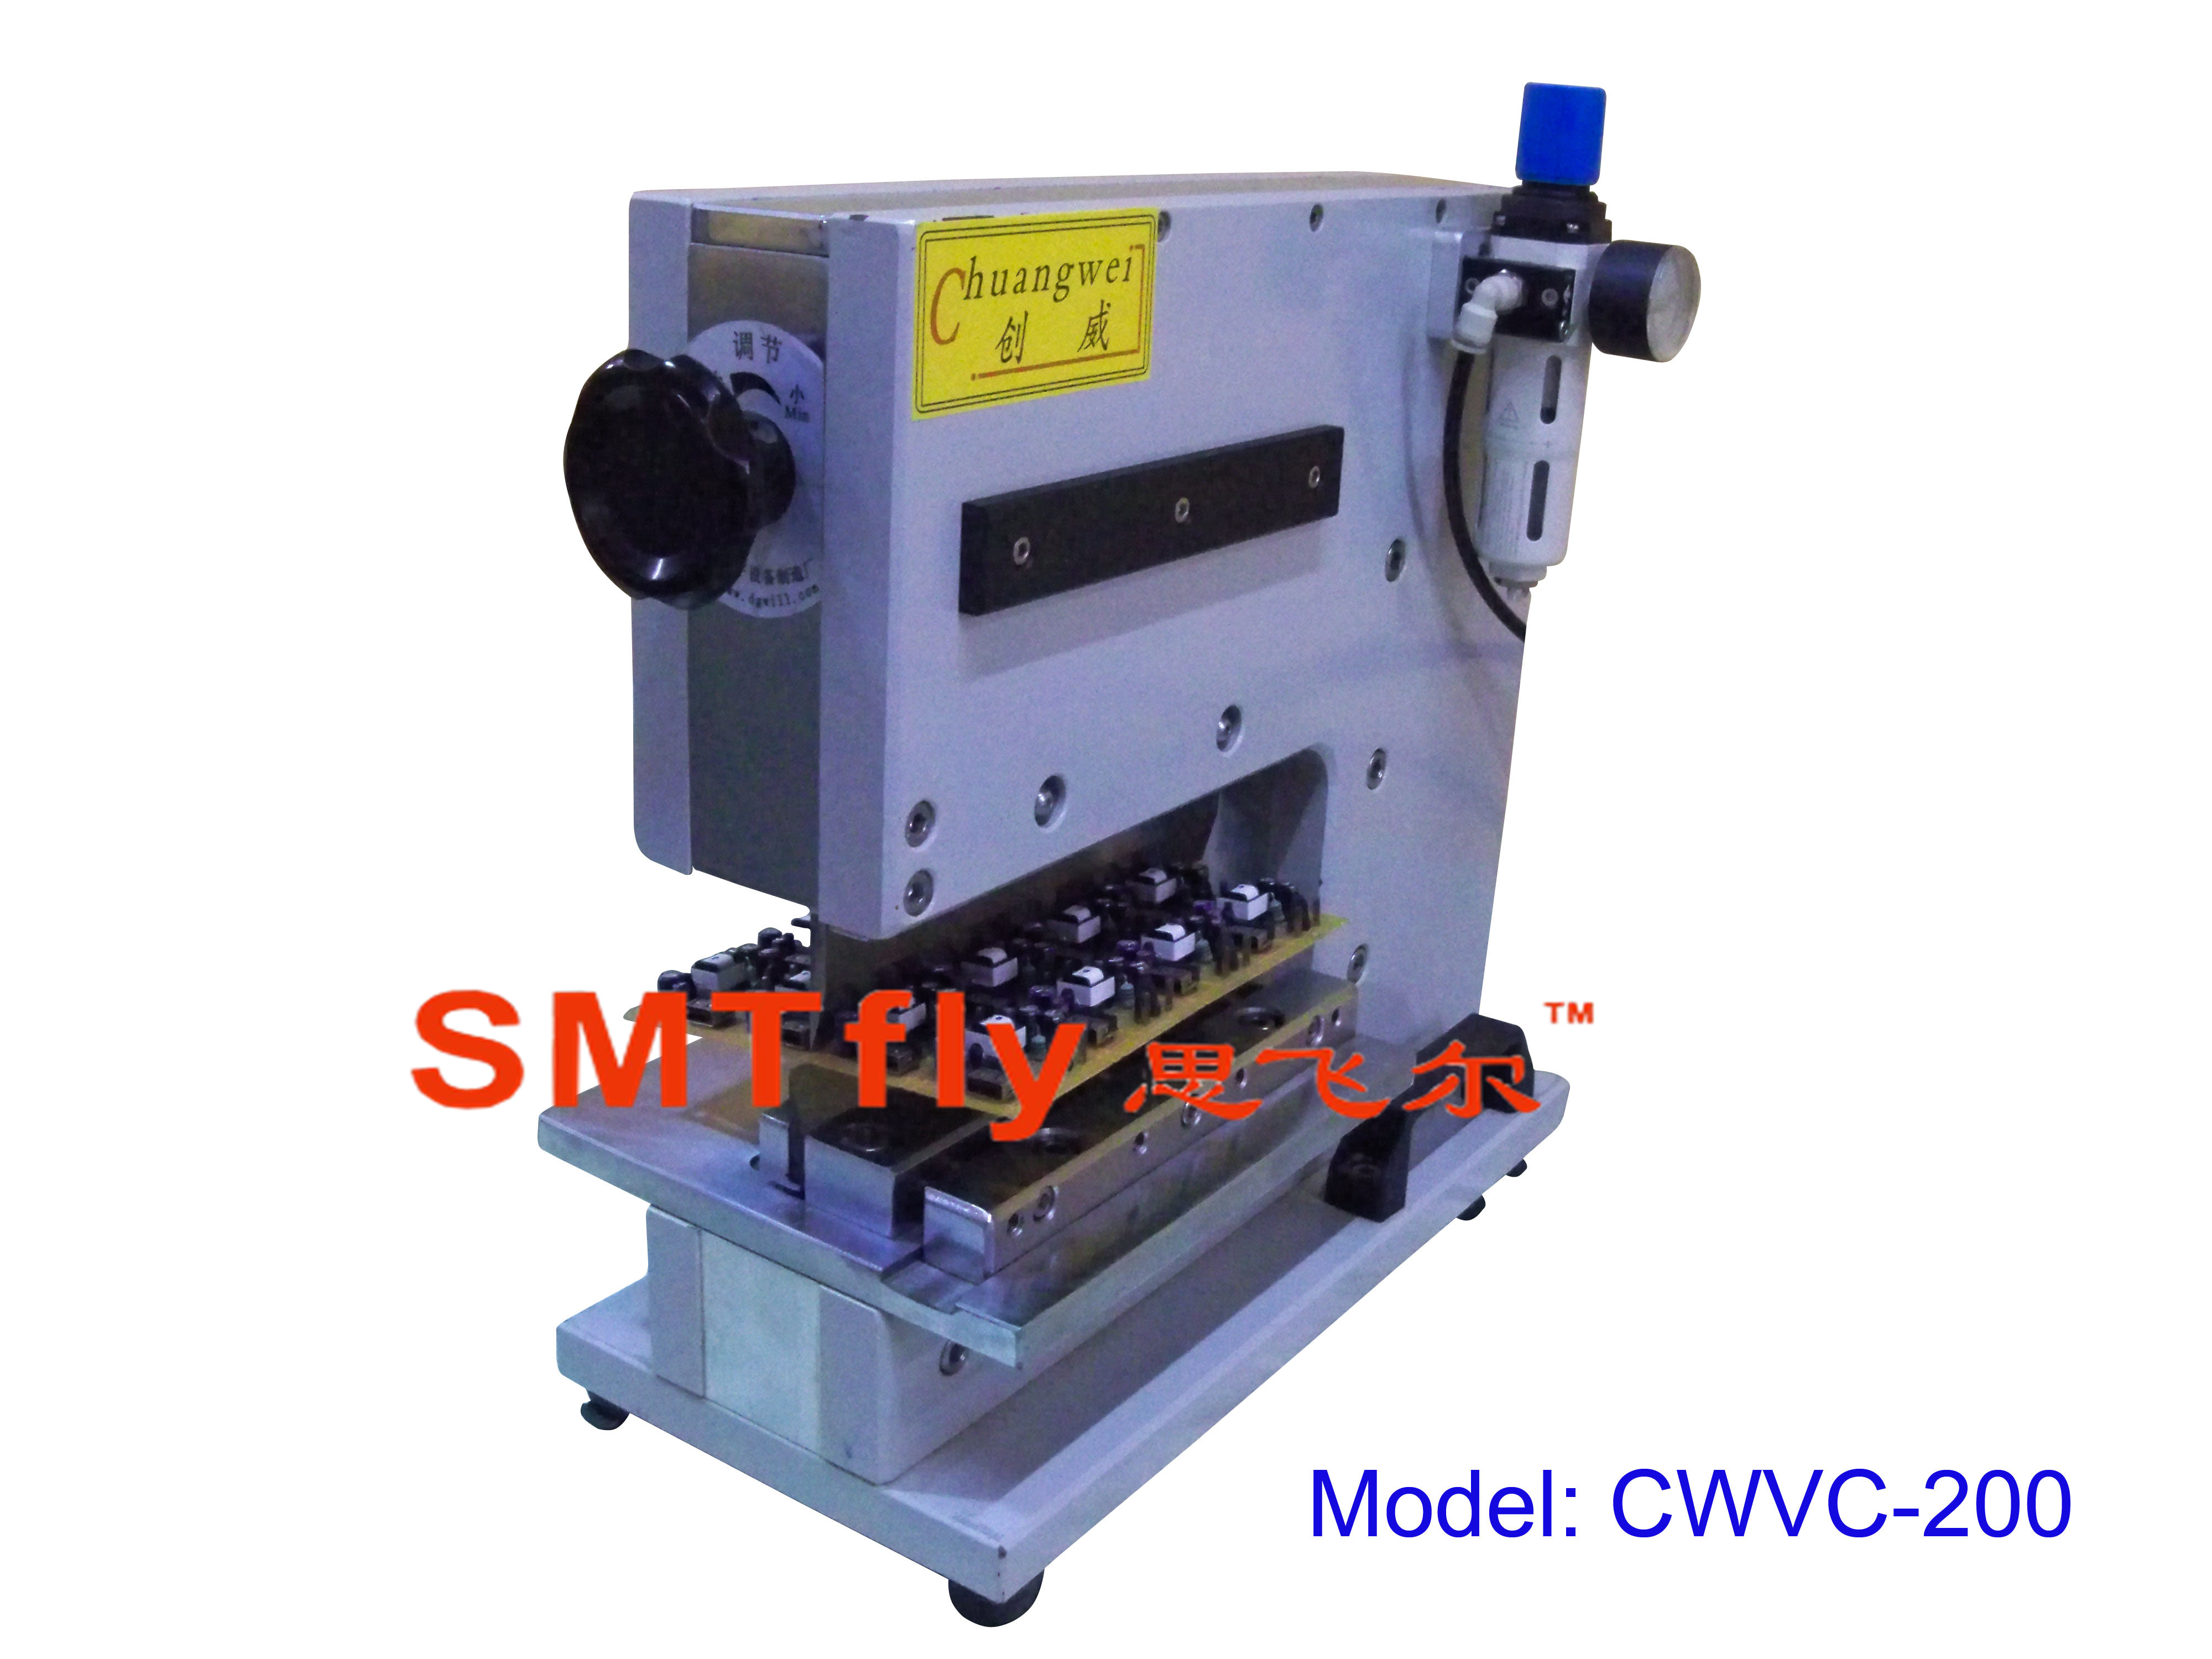 pcb guillotine equipment,SMTfly-200J